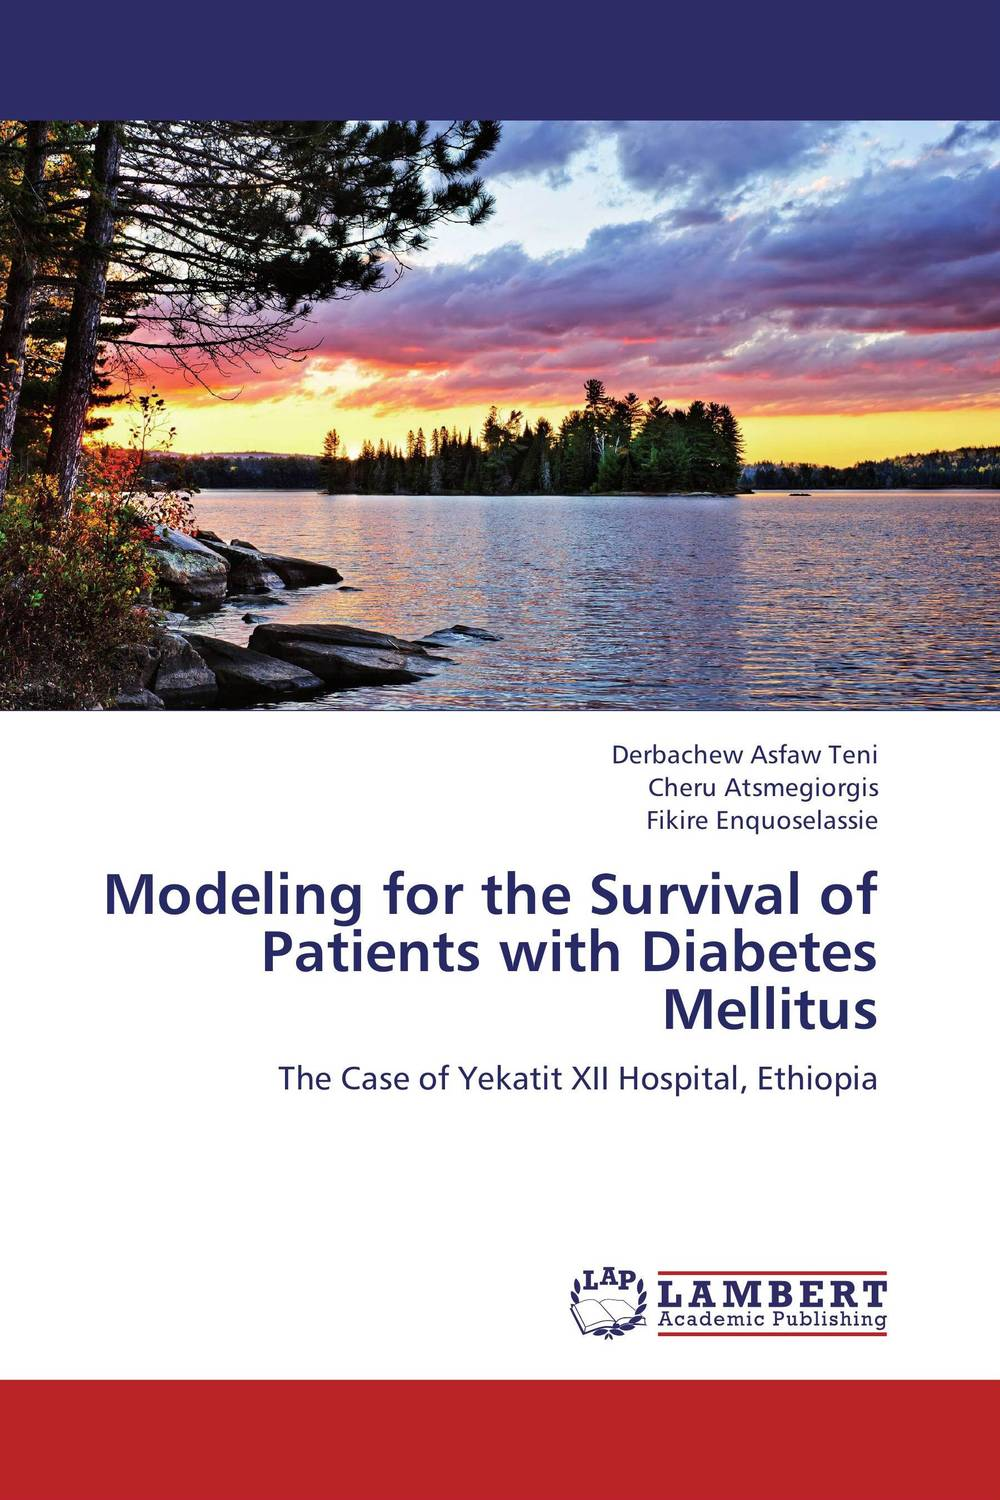 Modeling for the Survival of Patients with Diabetes Mellitus case history of therapeutic patient manual